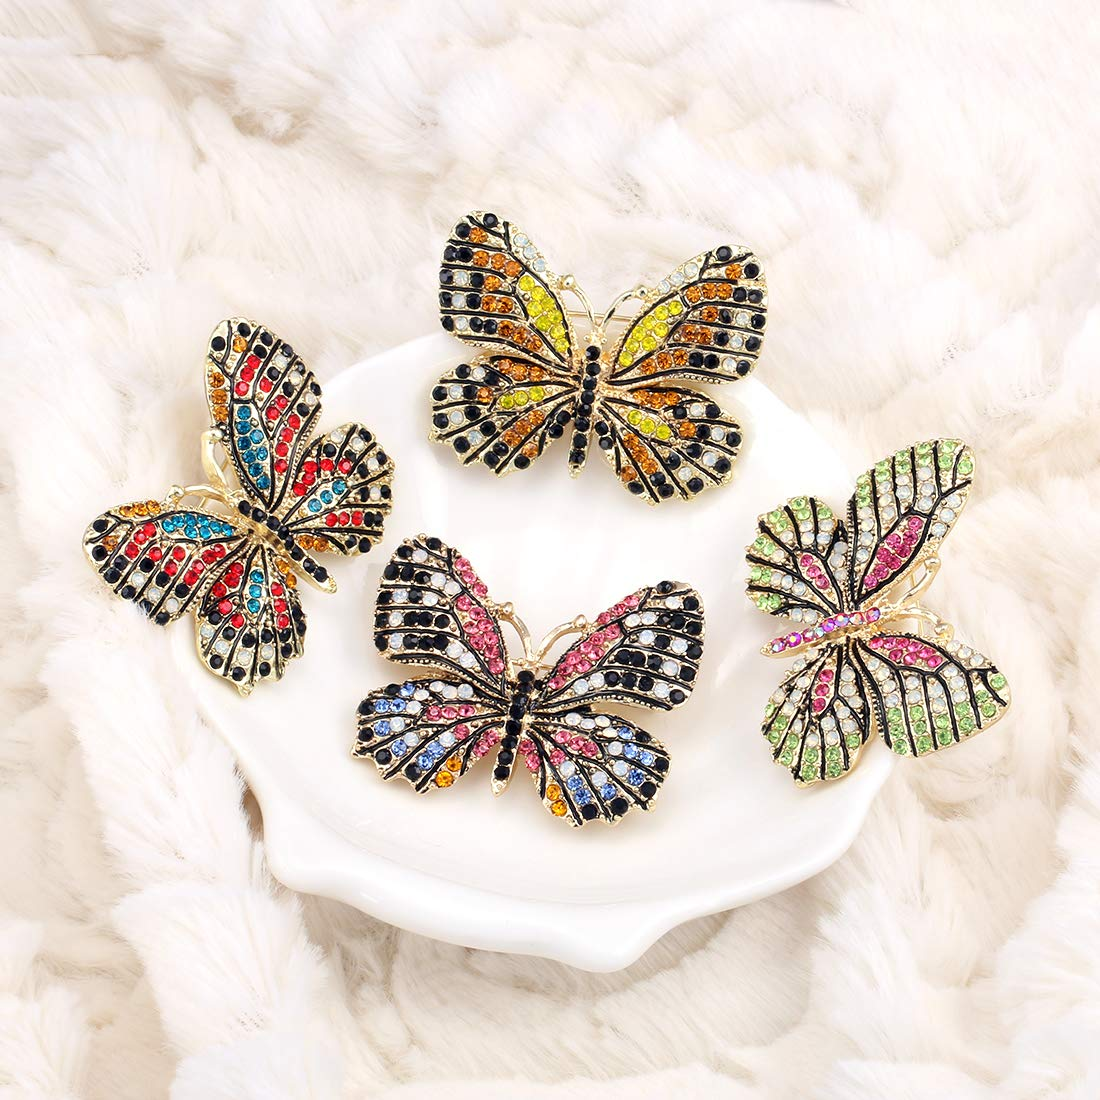 WeimanJewelry Lot6pcs Multicolor Rhinestone Crystal Butterfly Brooch Pin Set for Women by WeimanJewelry (Image #4)